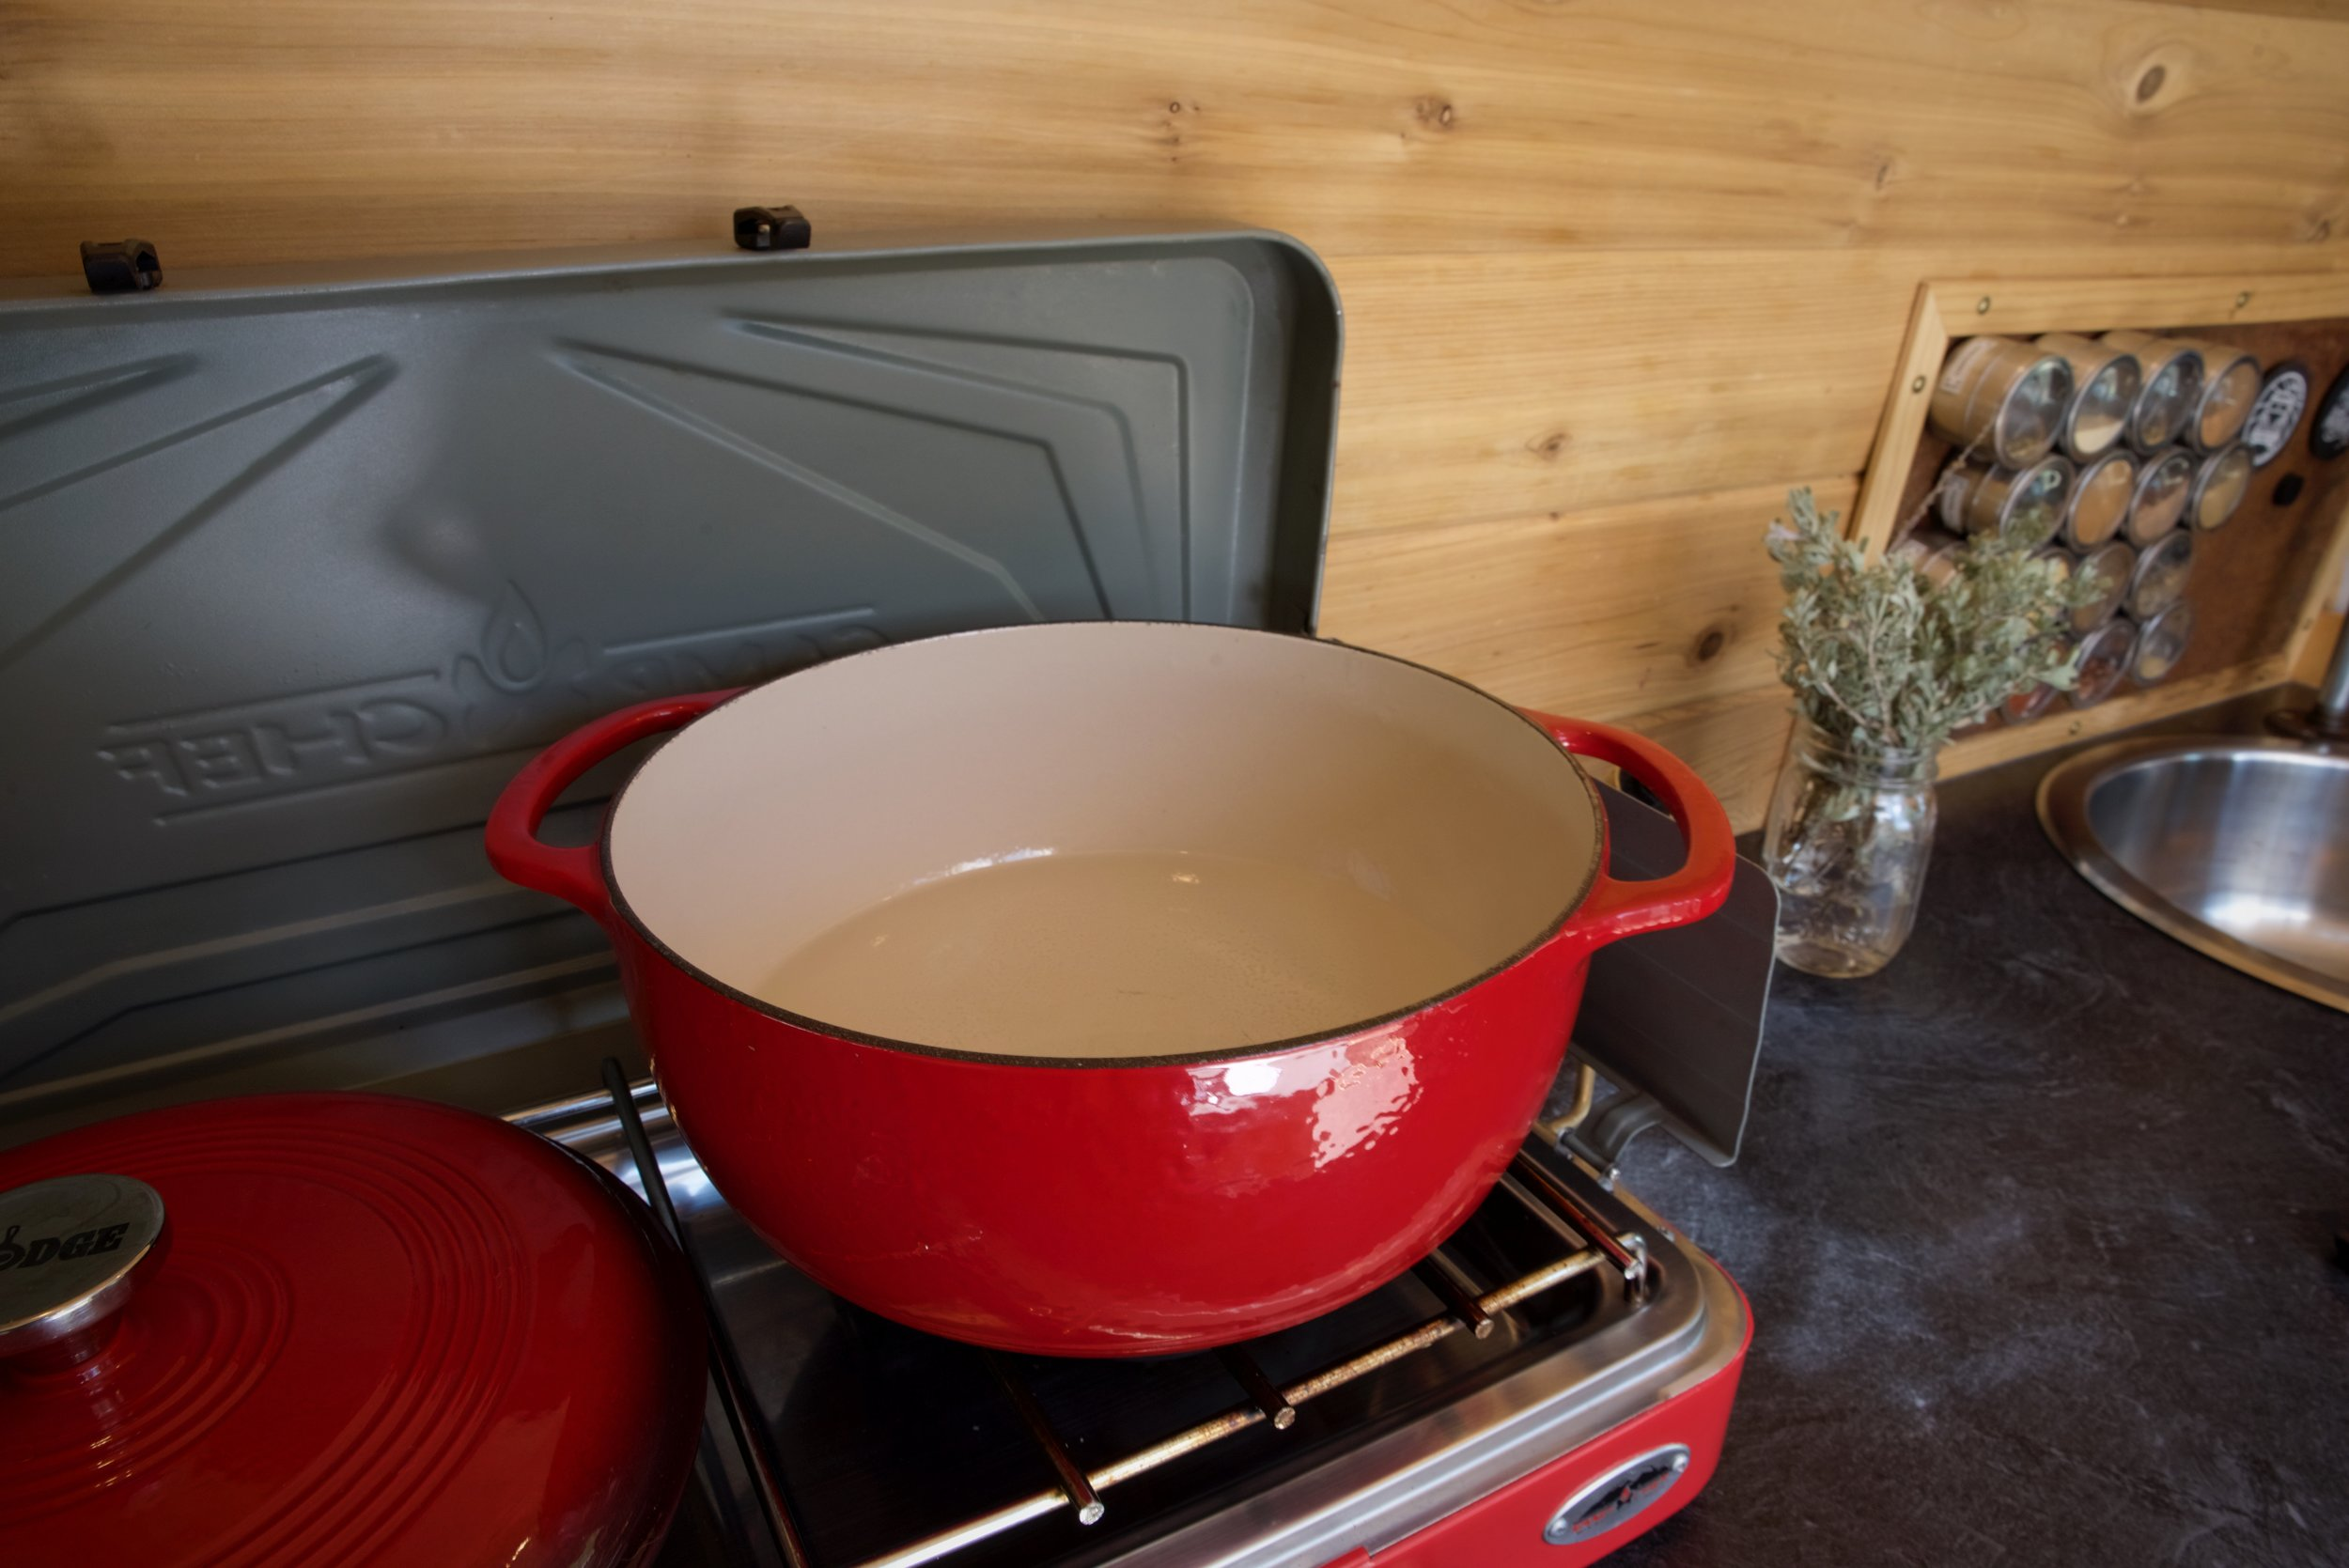 We use our big enamelware pot to wash our hair while living in our van.